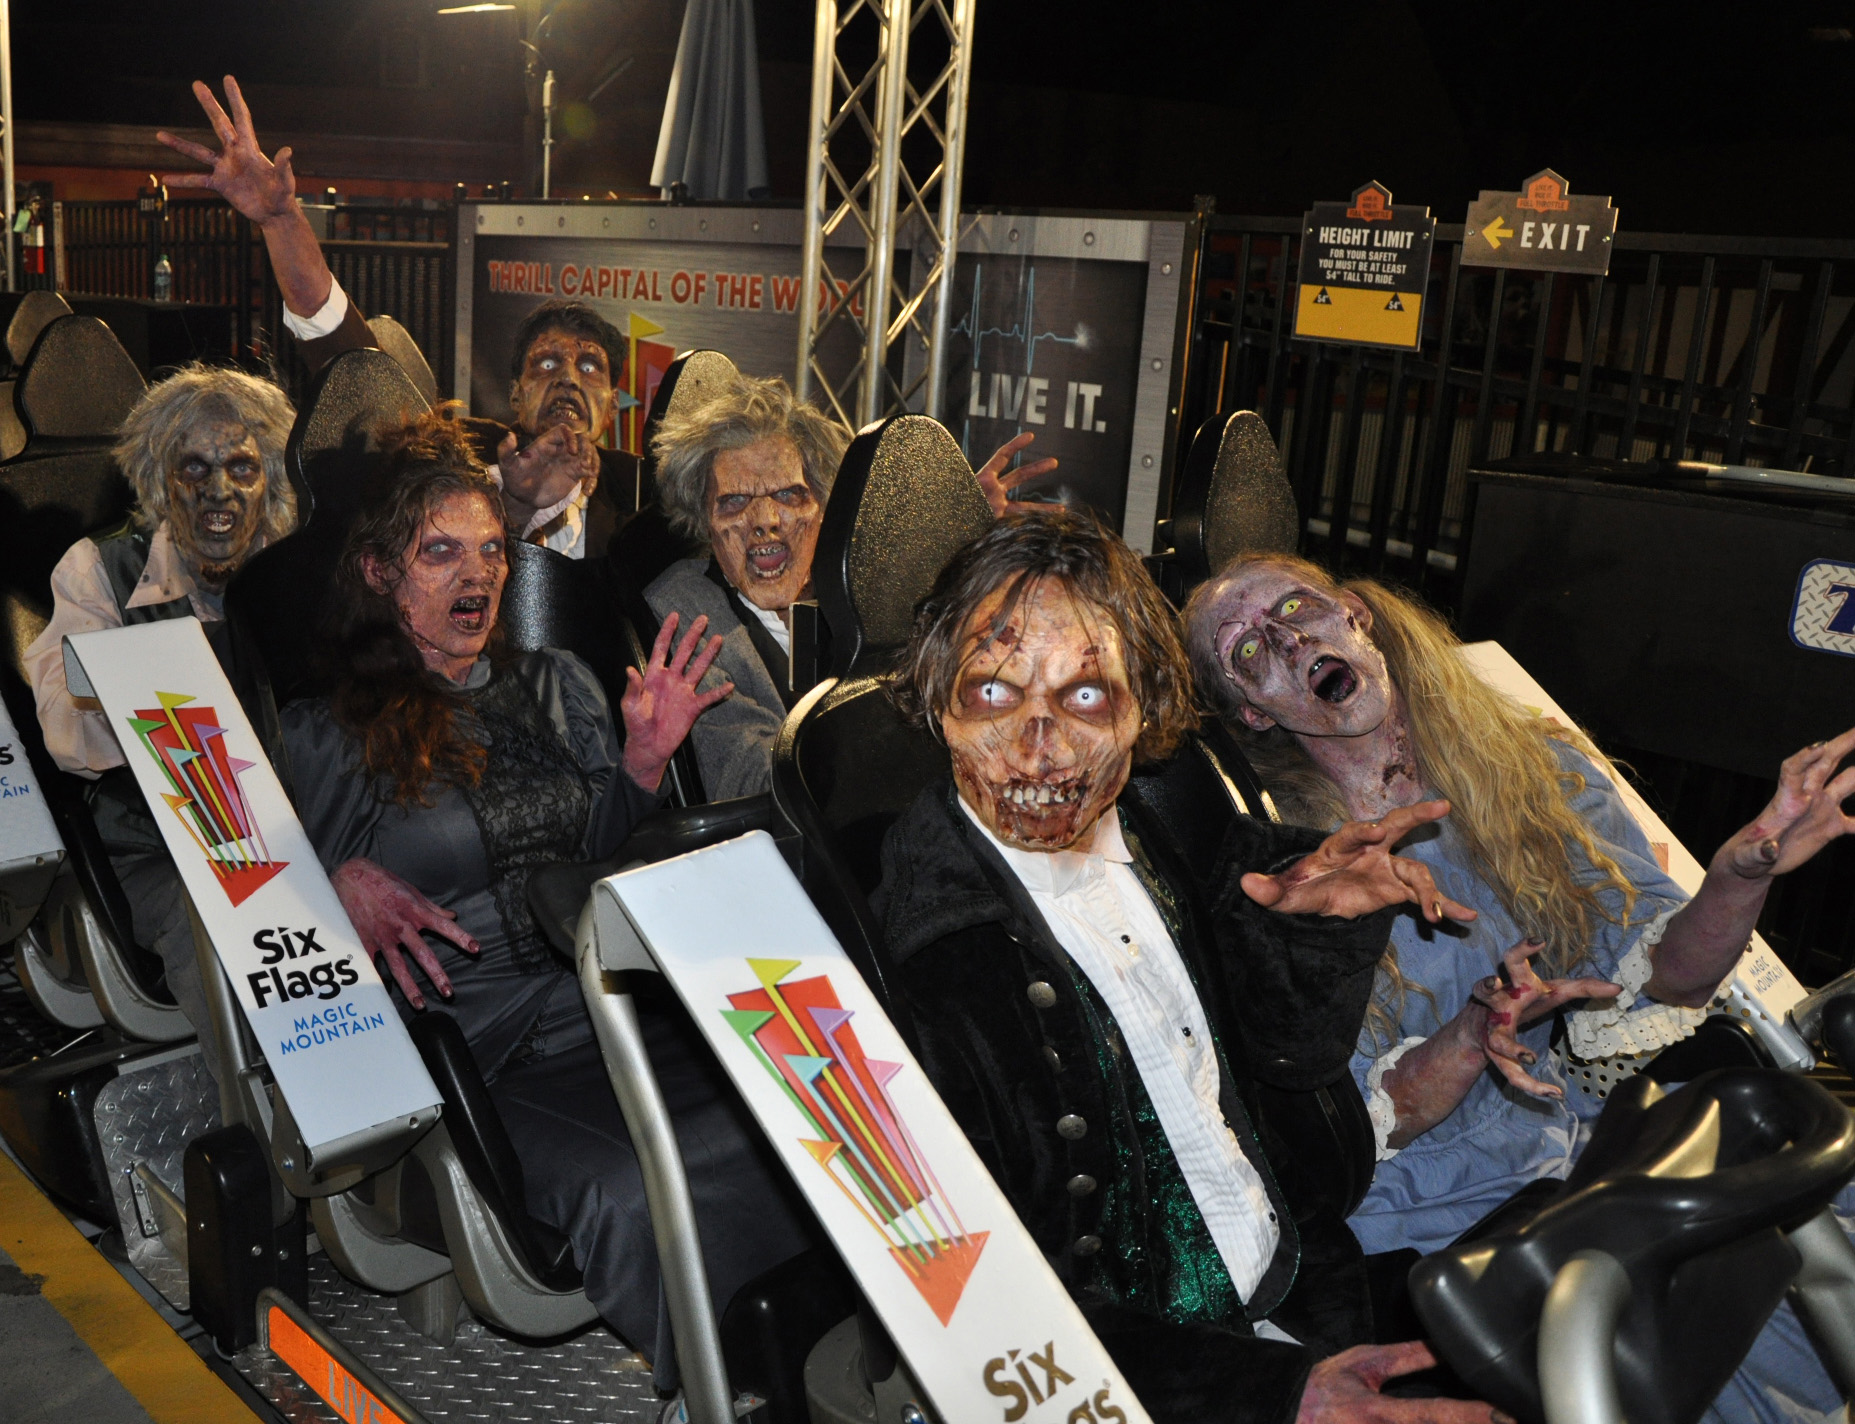 fright fest at six flags magic mountain the thrill capital of the world